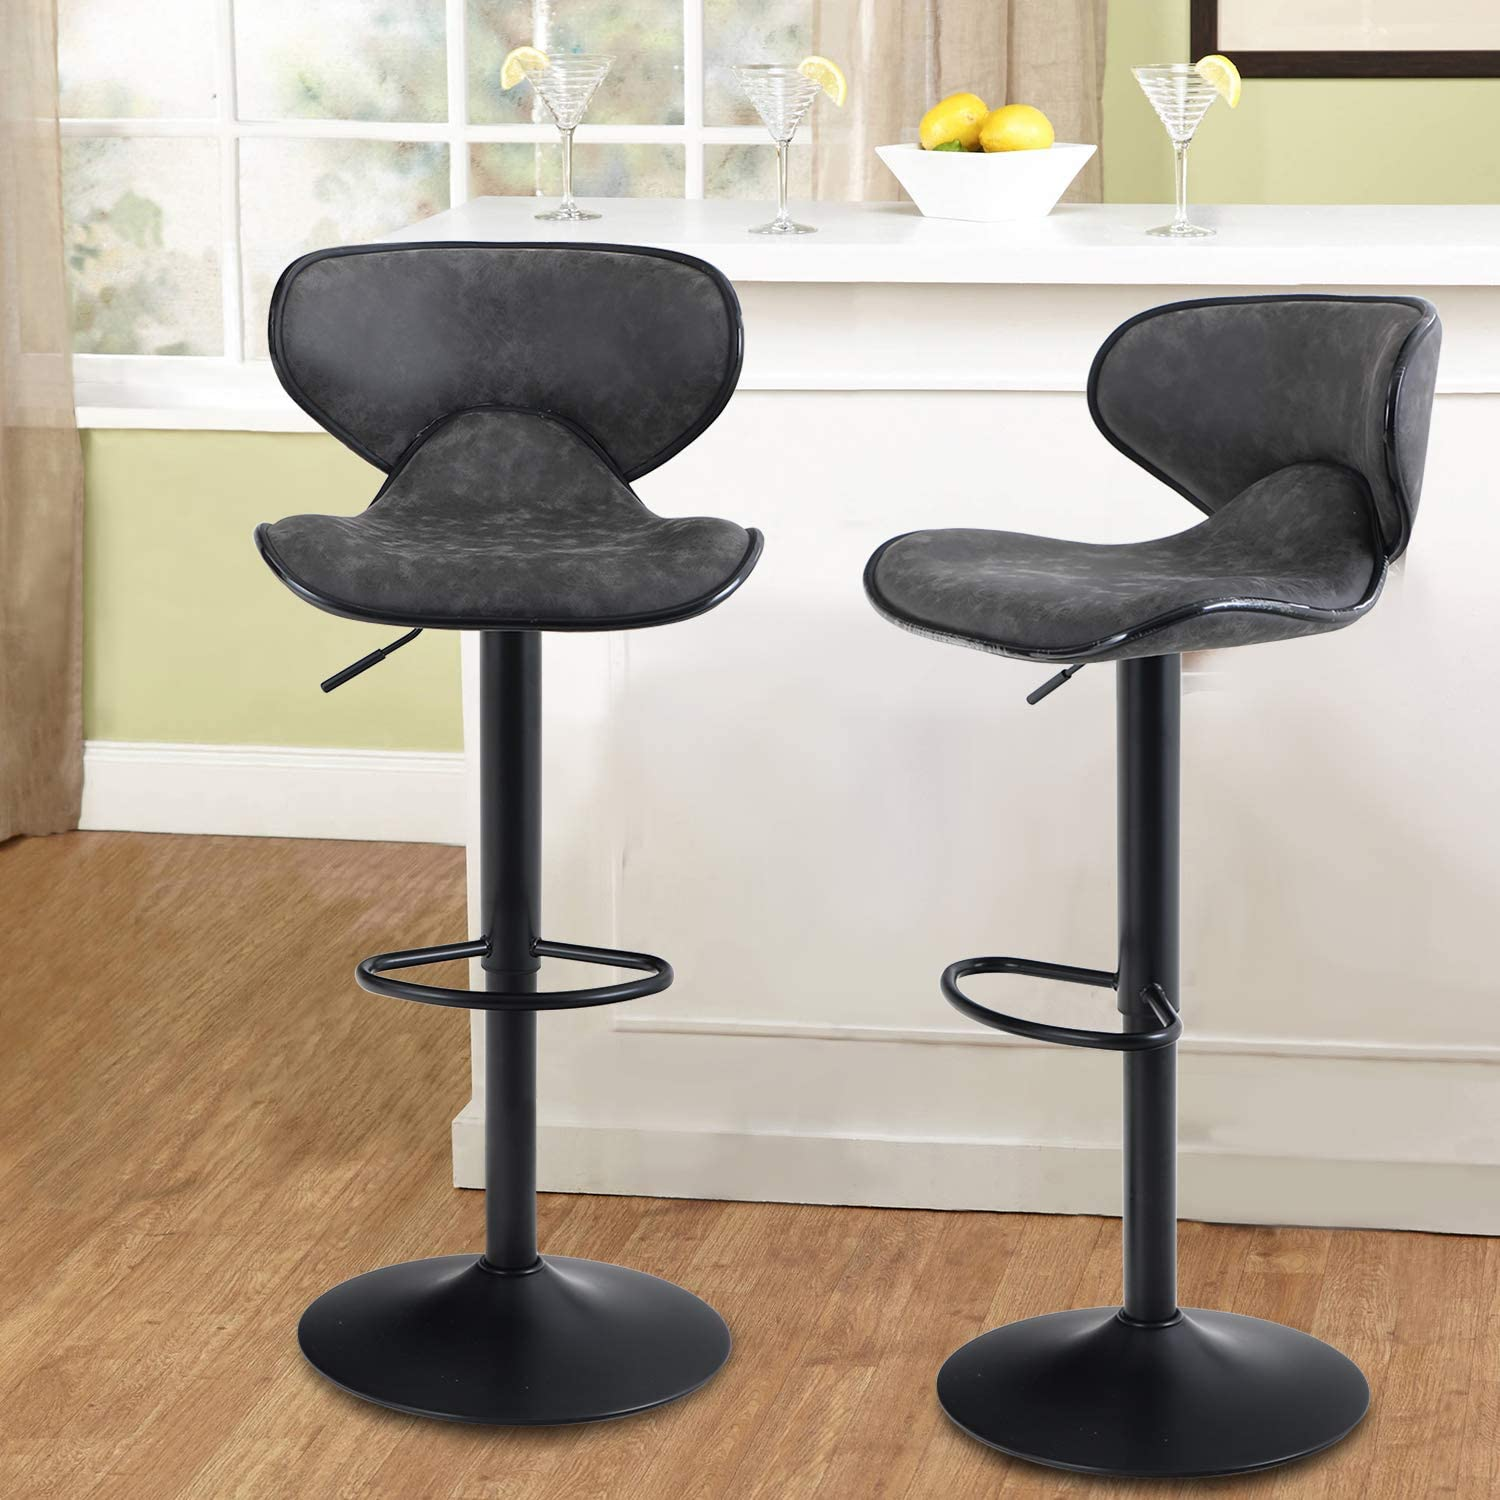 MAISON ARTS Counter Height Swivel Bar Stools Set of 9 Adjustable Barstools  with Back for Kitchen Counter Tall Bar Height Chairs Faux Leather High ...